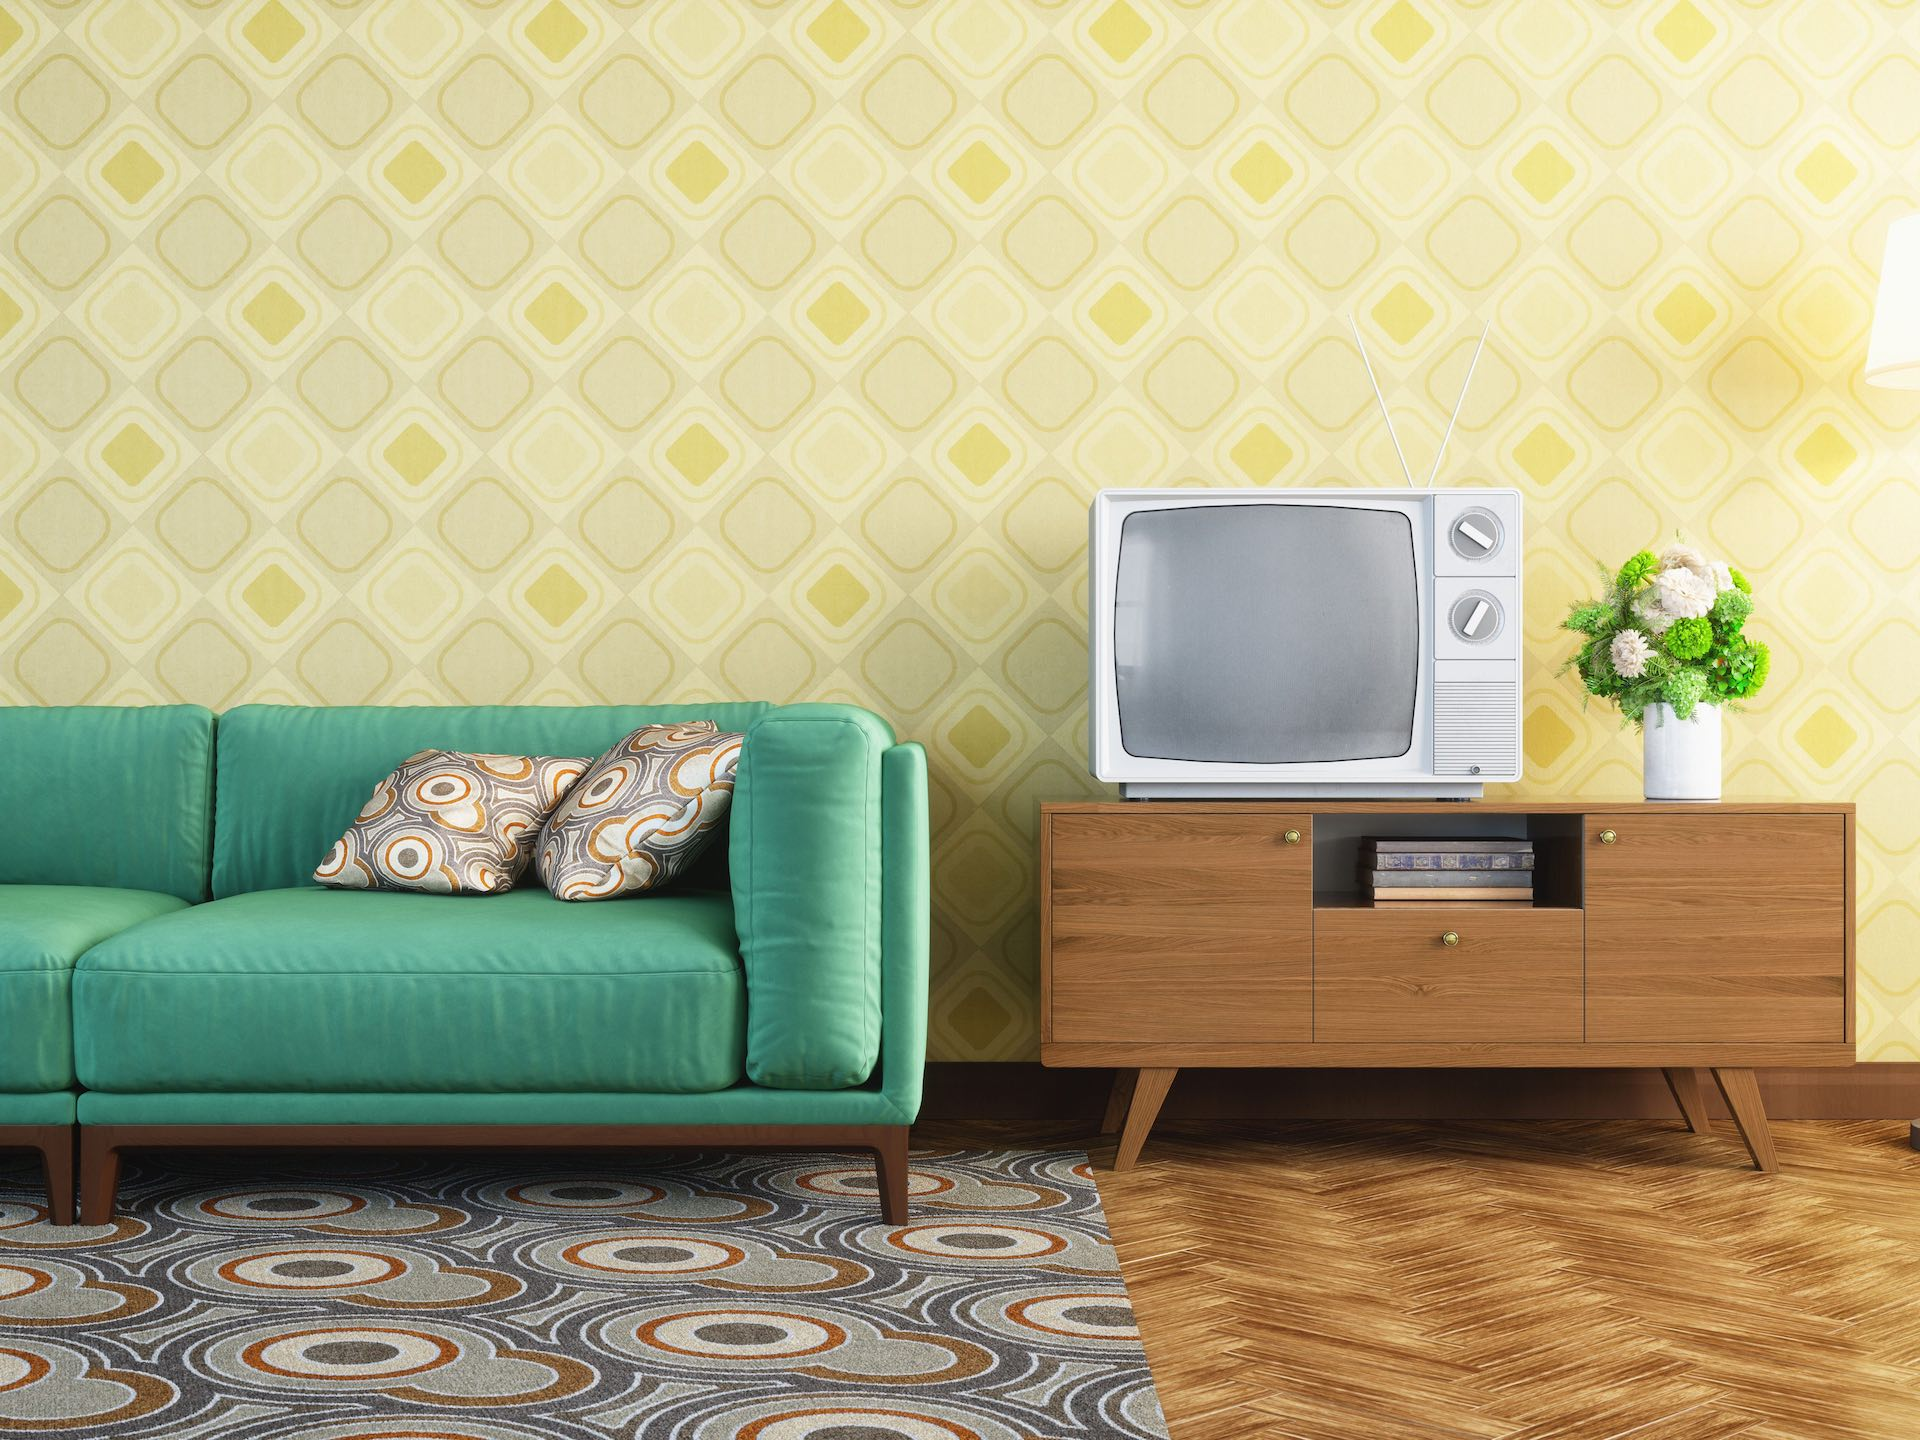 Heavy and dramatic patterns on walls and floorings in Retro homes